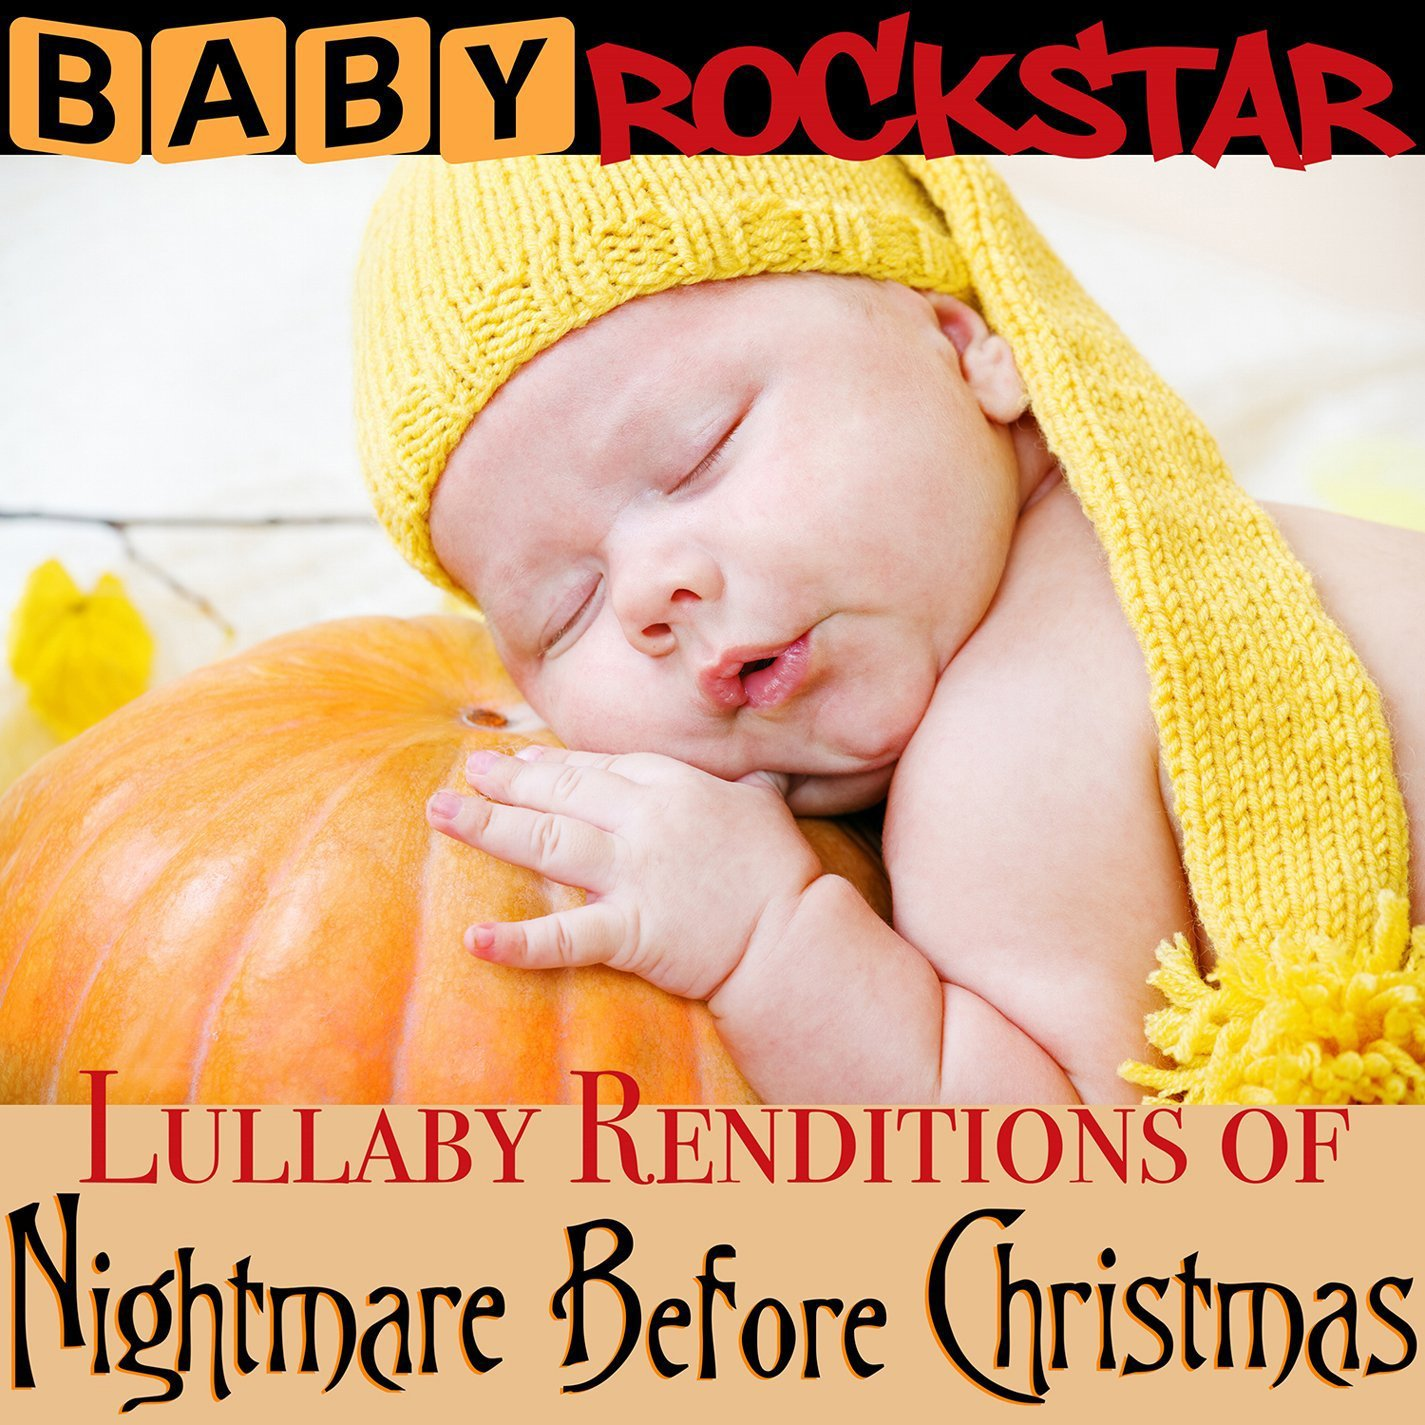 Baby Rockstar - Lullaby Renditions Of The Nightmare Before Christmas ...